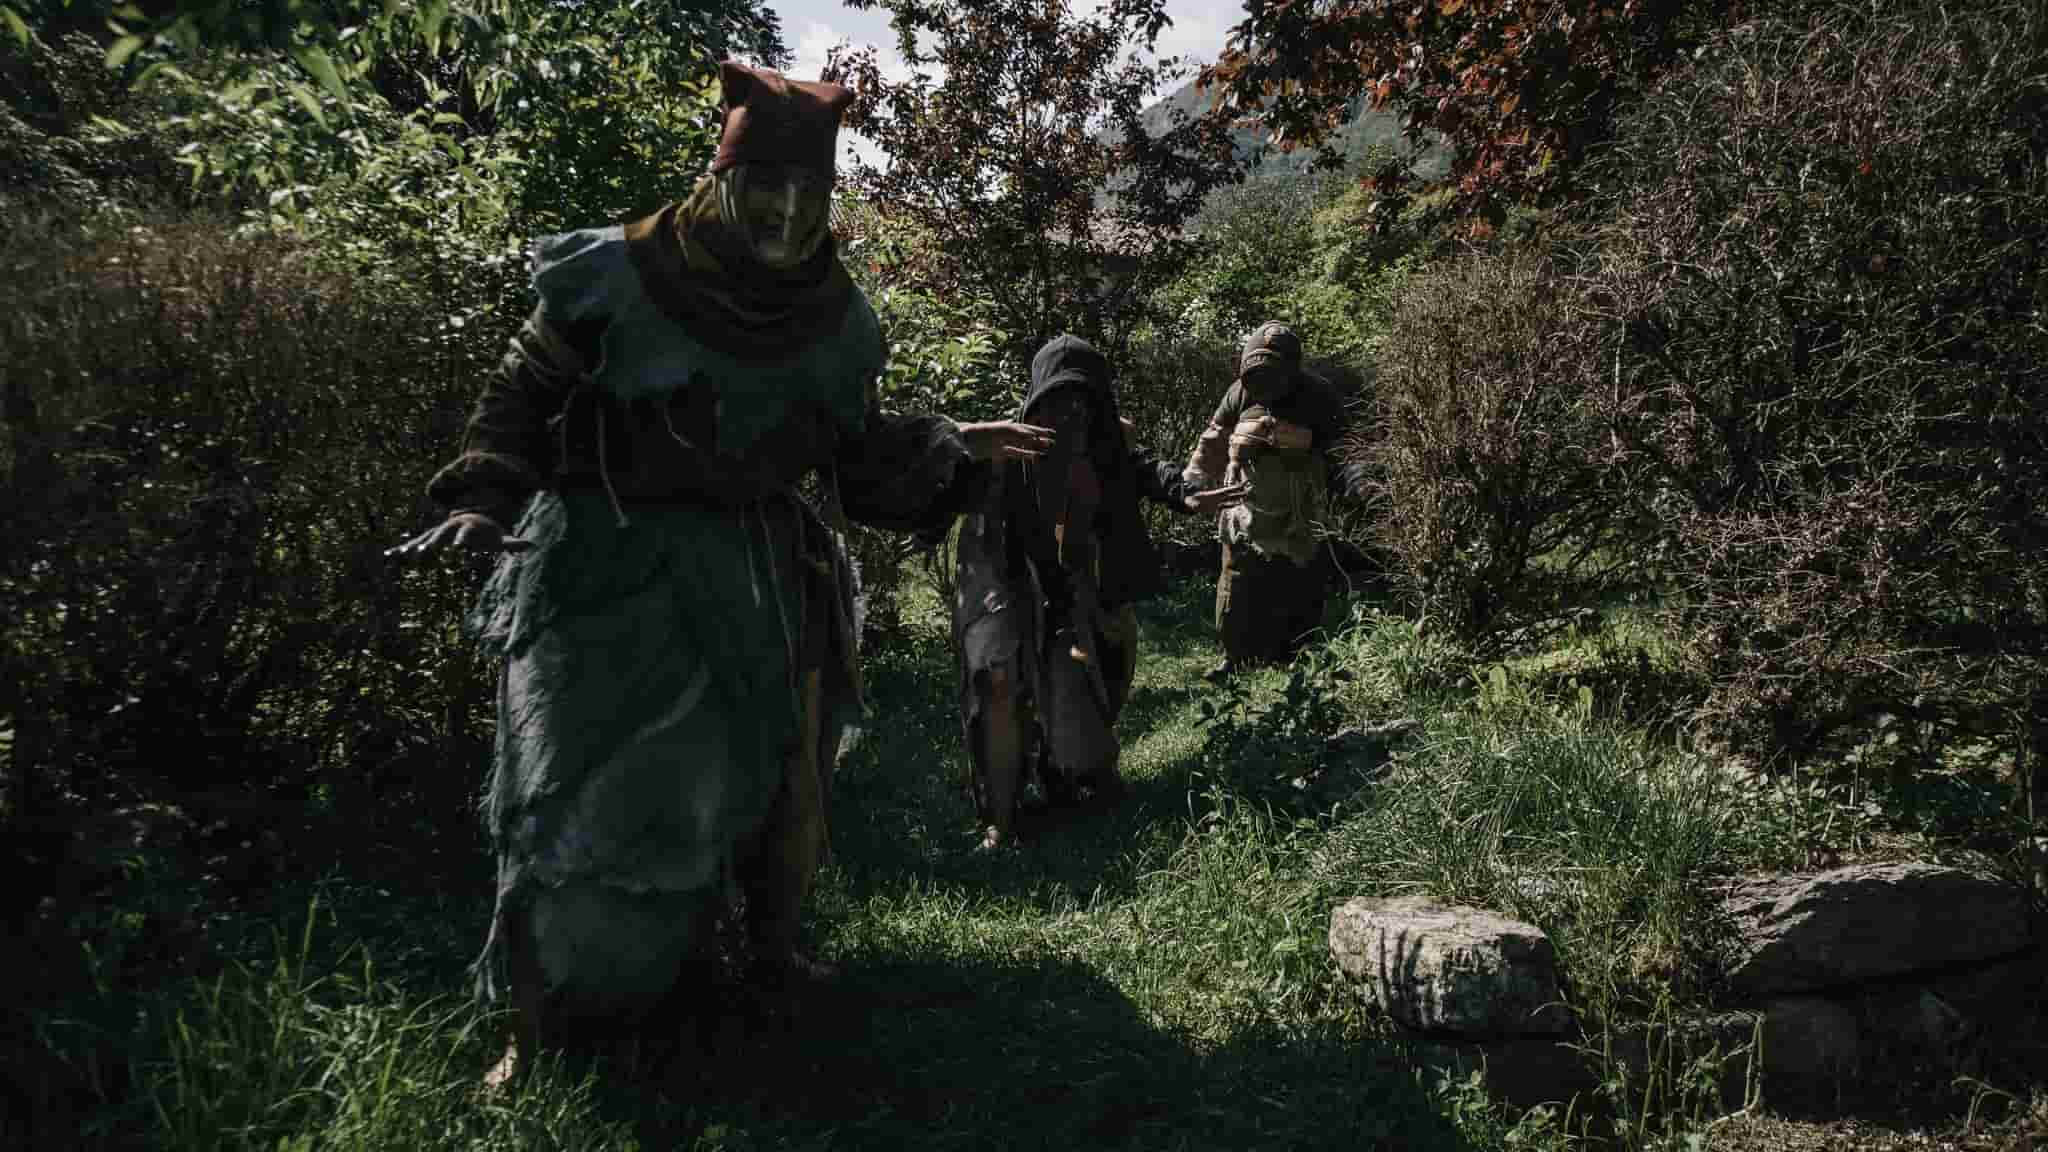 LARP A Night With... Conclusioni, con Chiara Tirabasso - Streghe di Novigrad, The Witcher